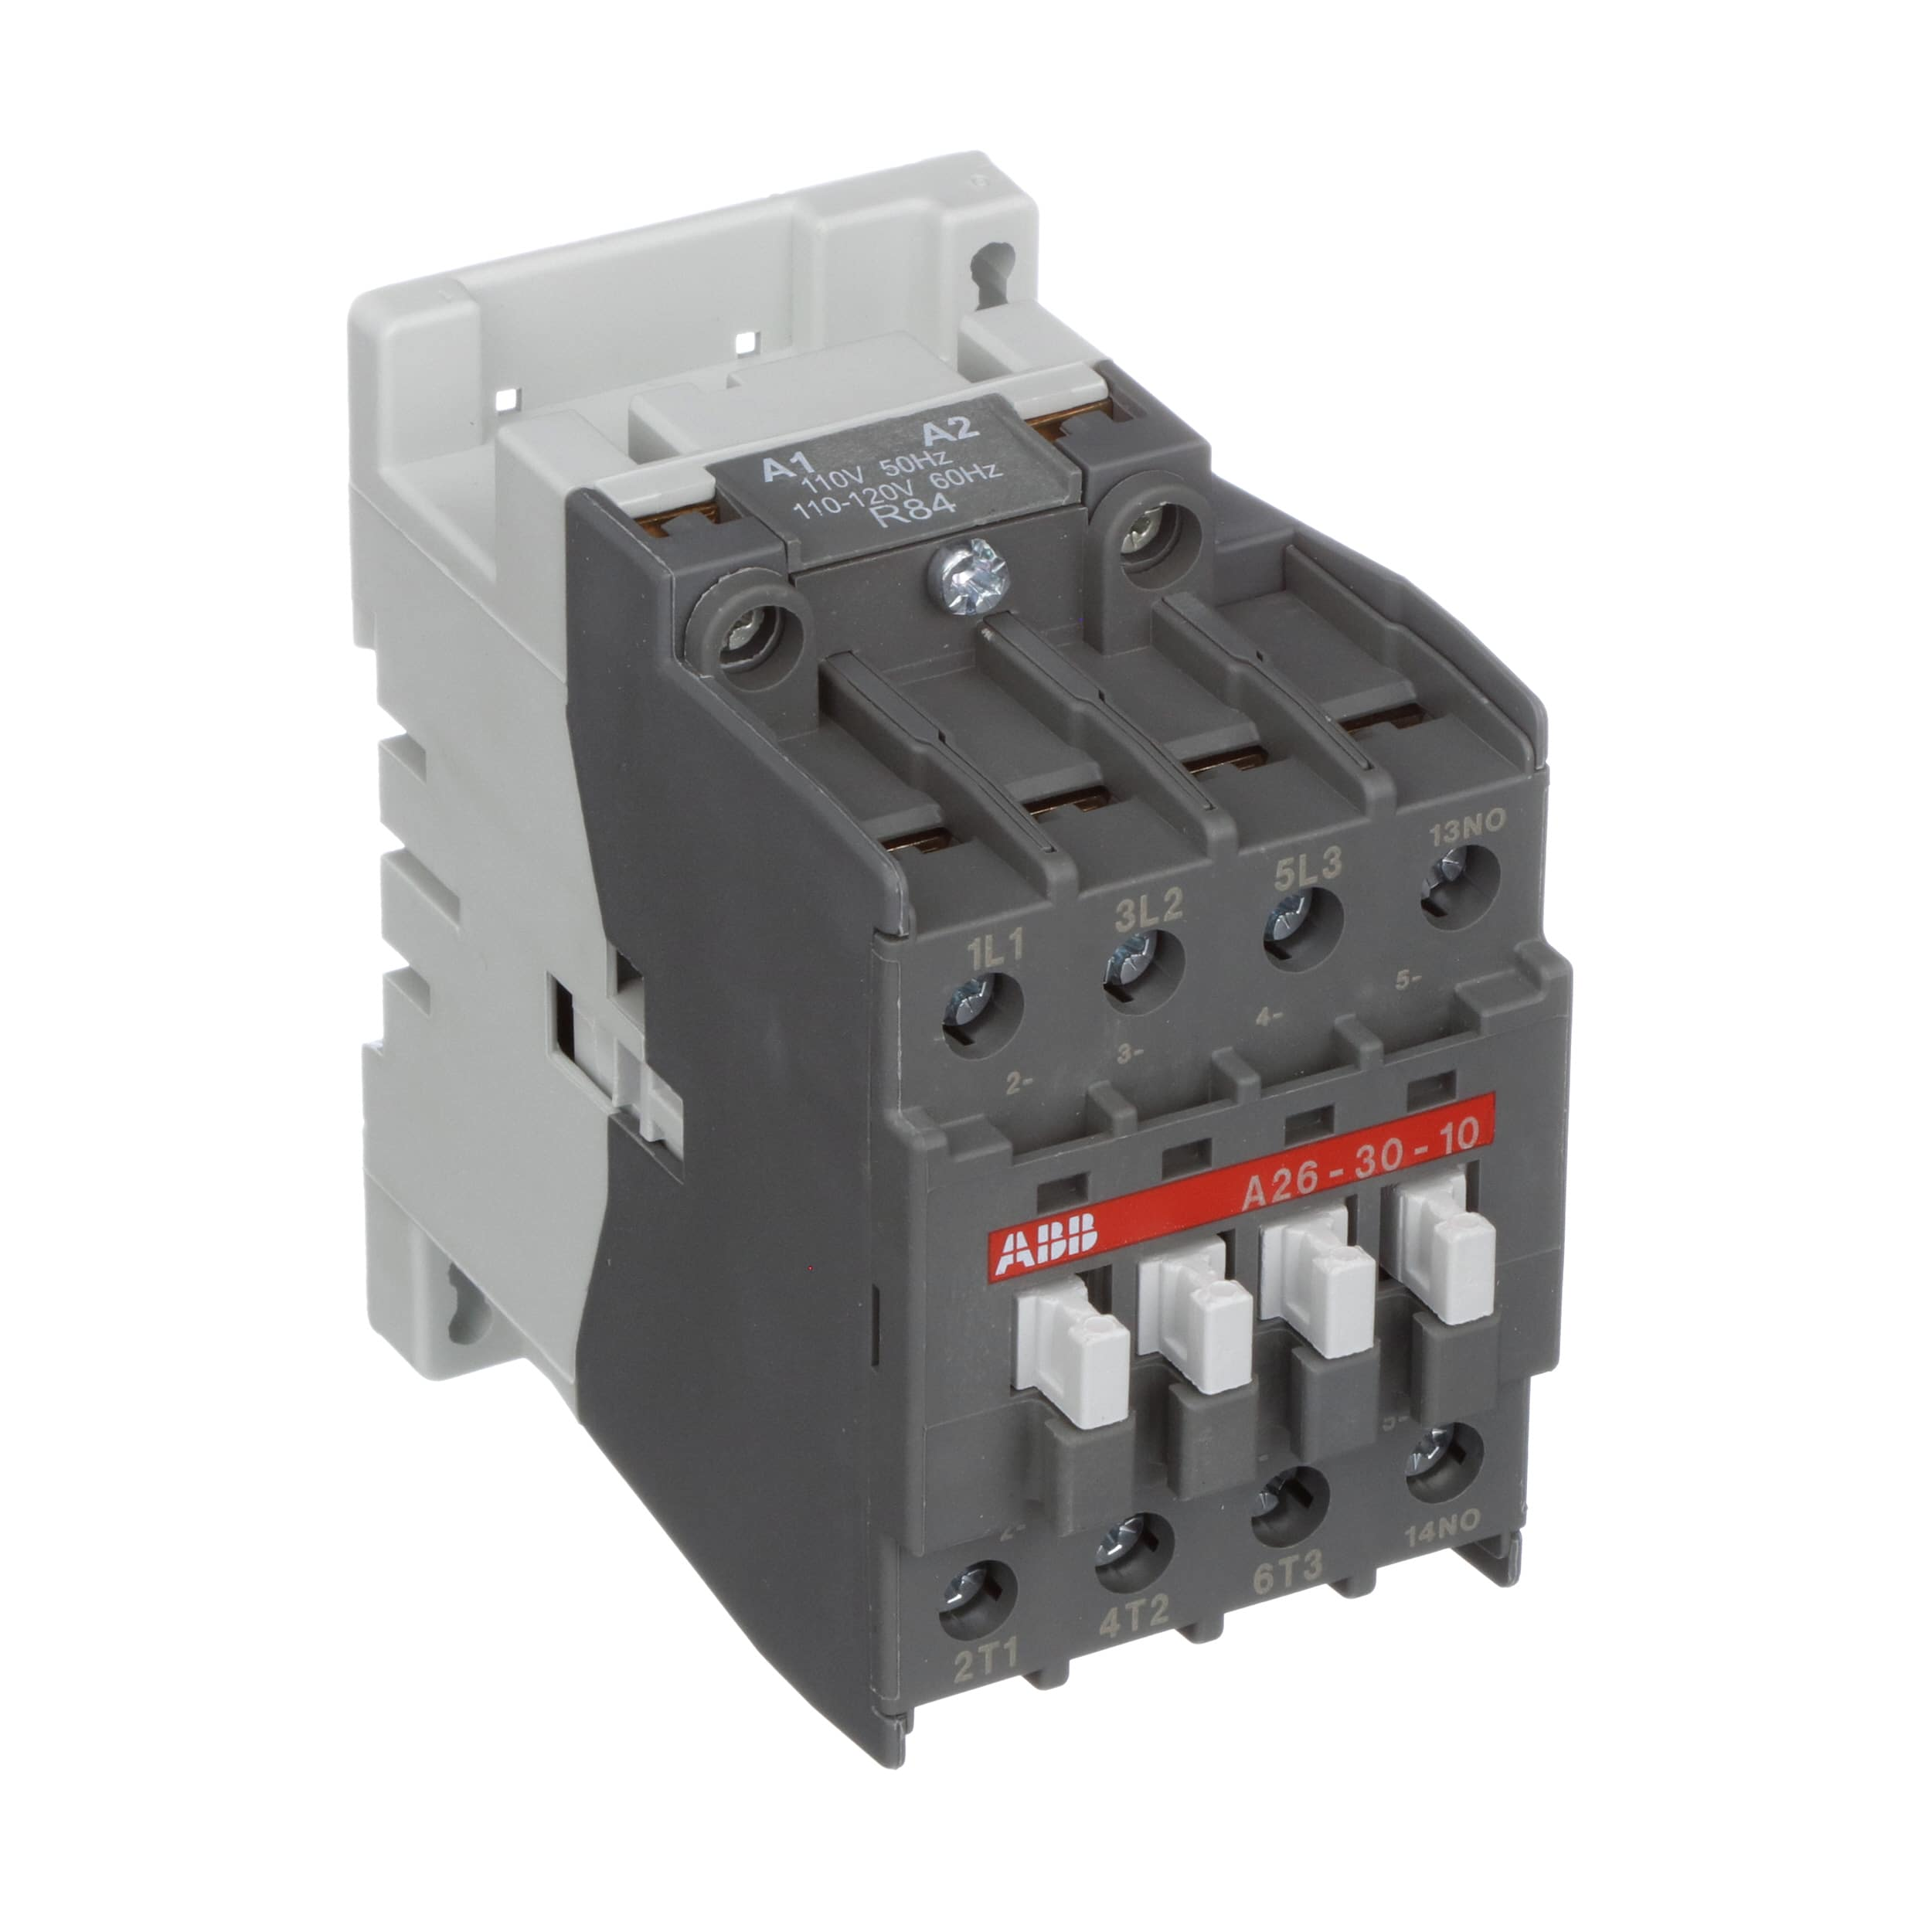 A26-30-10-84 Abb Overload Relay Wiring on